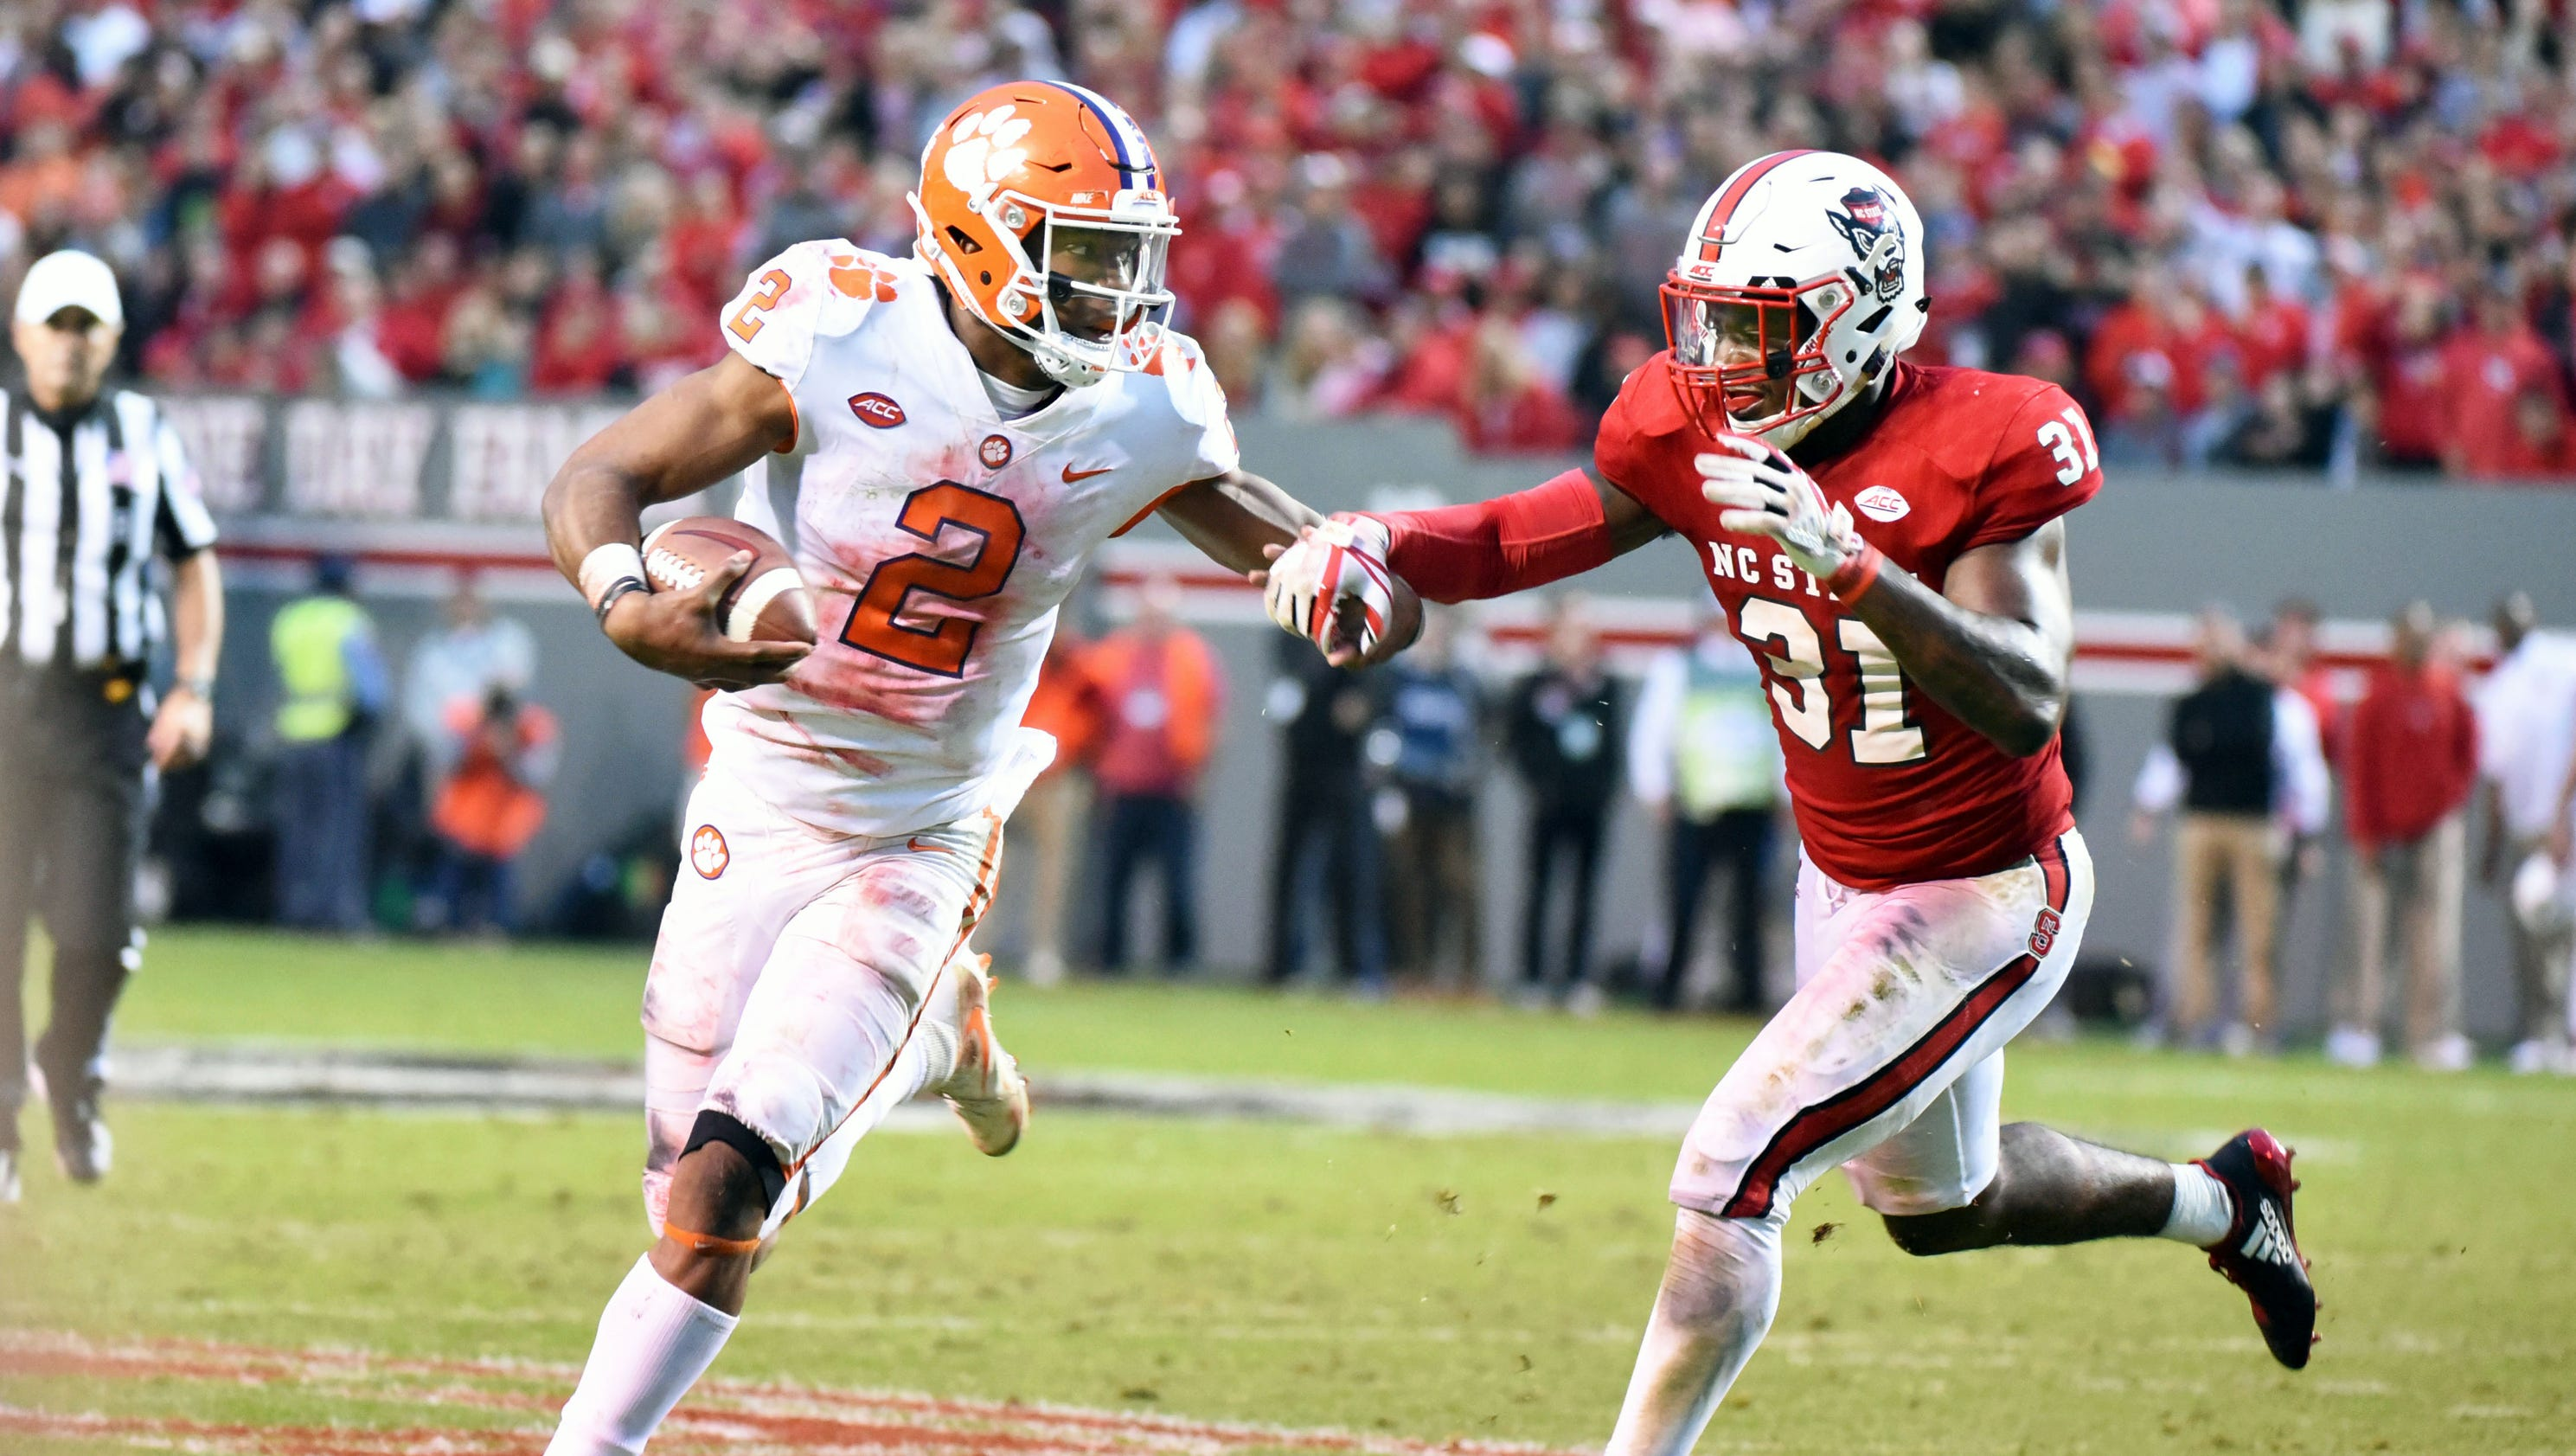 clemson chatrooms Clemson football live chat ask clemson beat writer aaron brenner questions about last week's thumping of syracuse and this week's game against boston college.